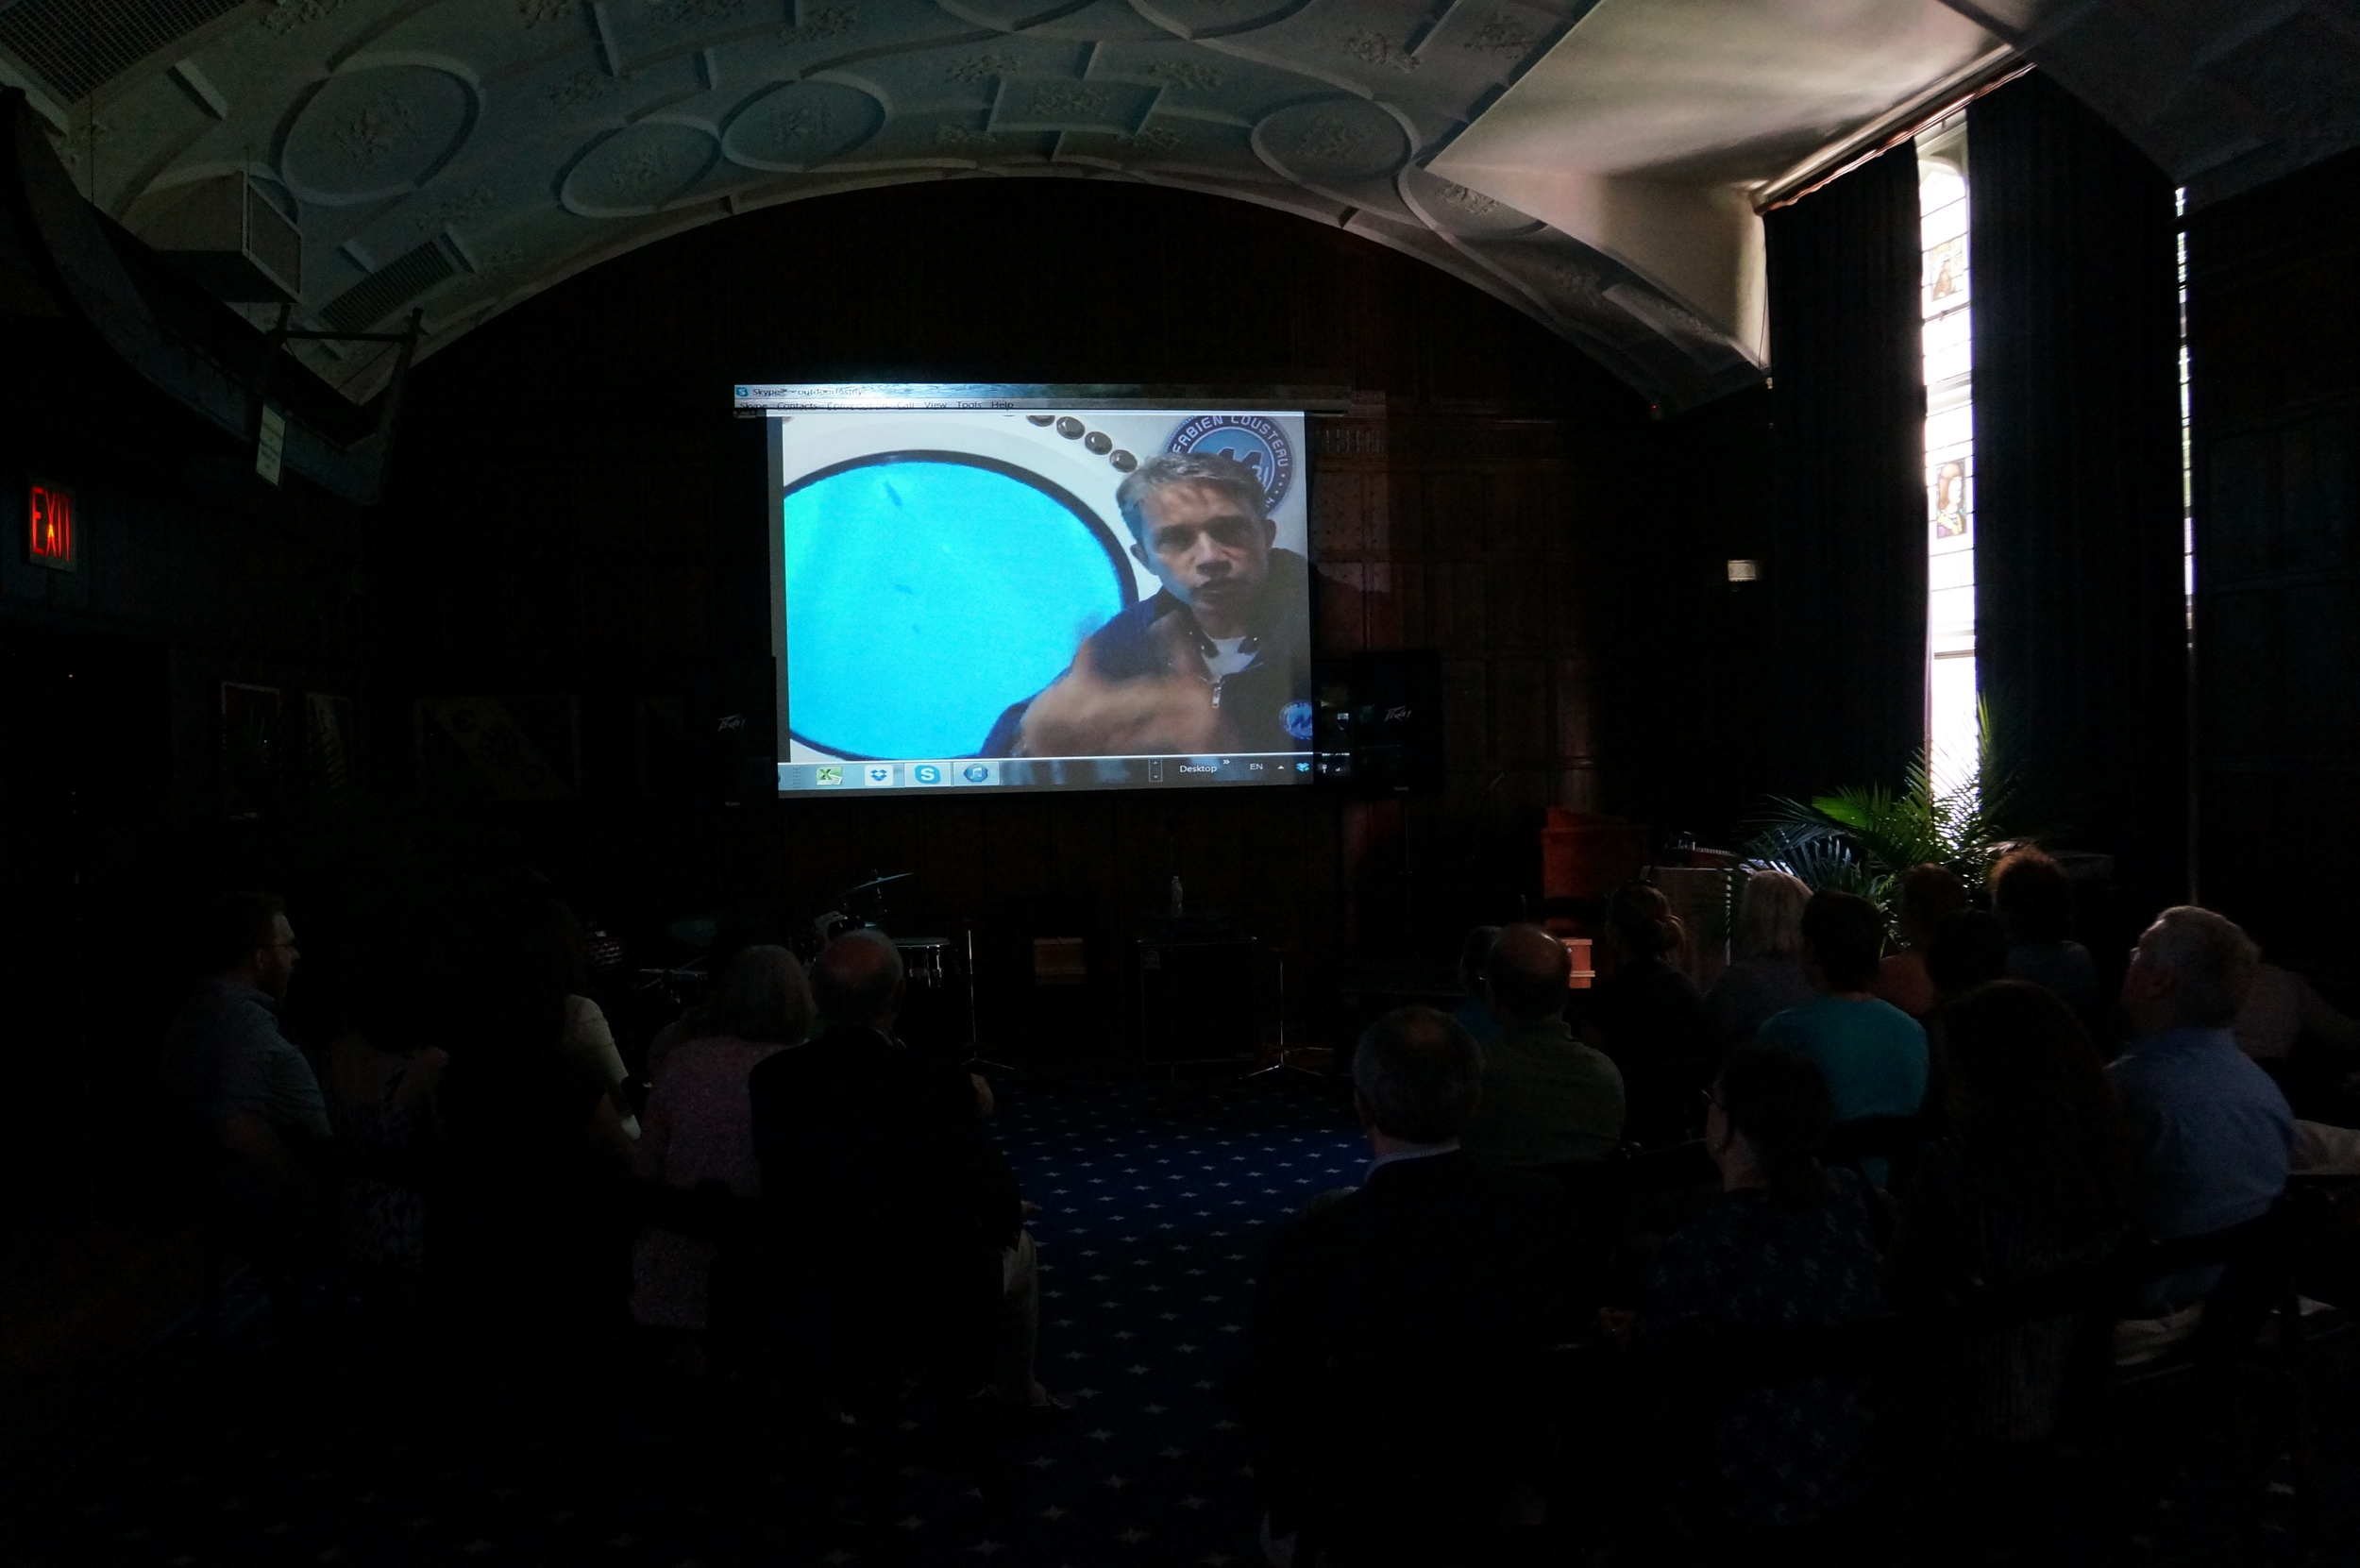 Cousteau on the big screen.